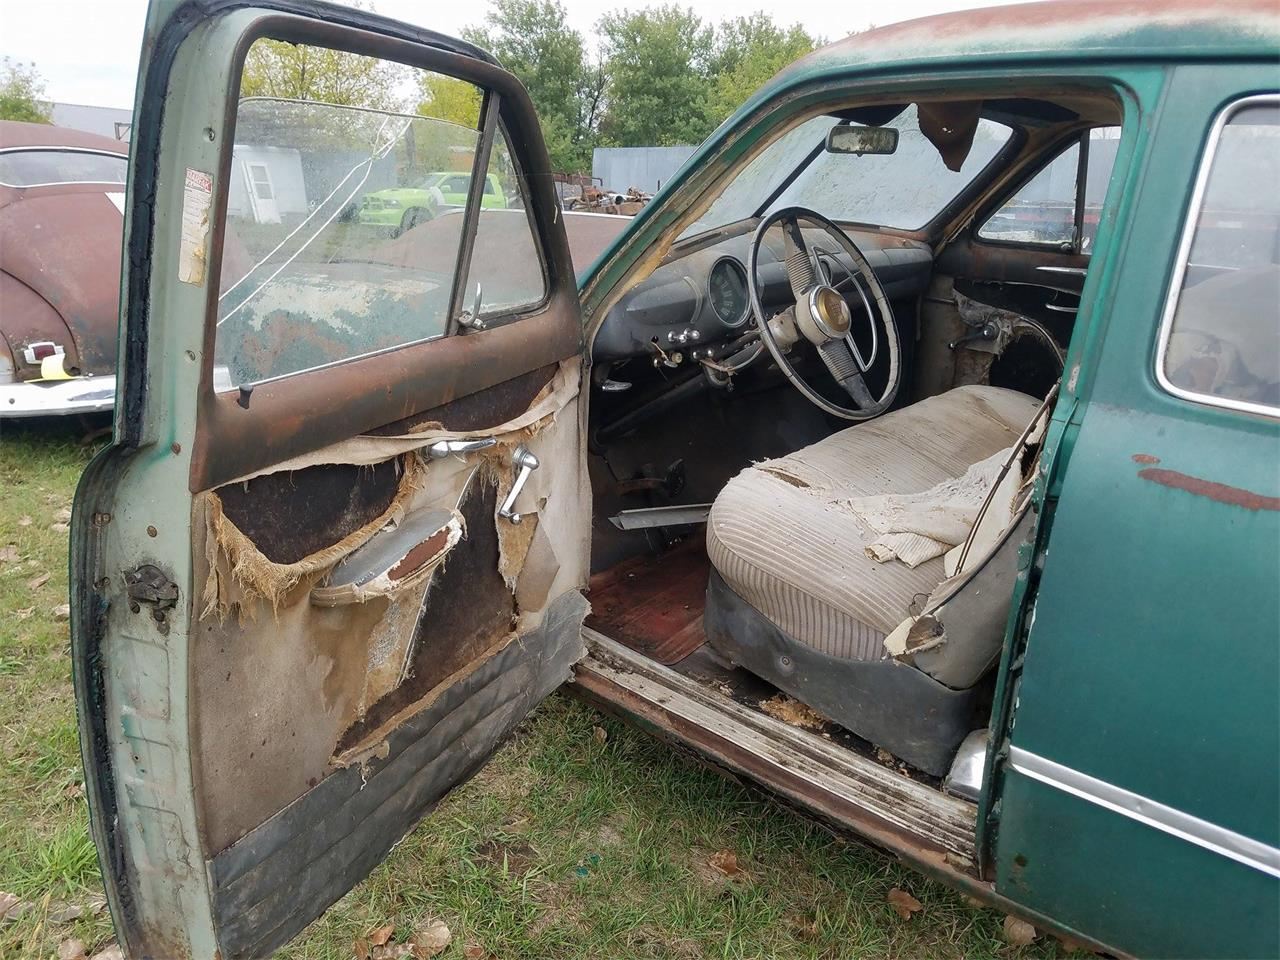 1949 Ford Sedan for sale in Thief River Falls, MN – photo 15